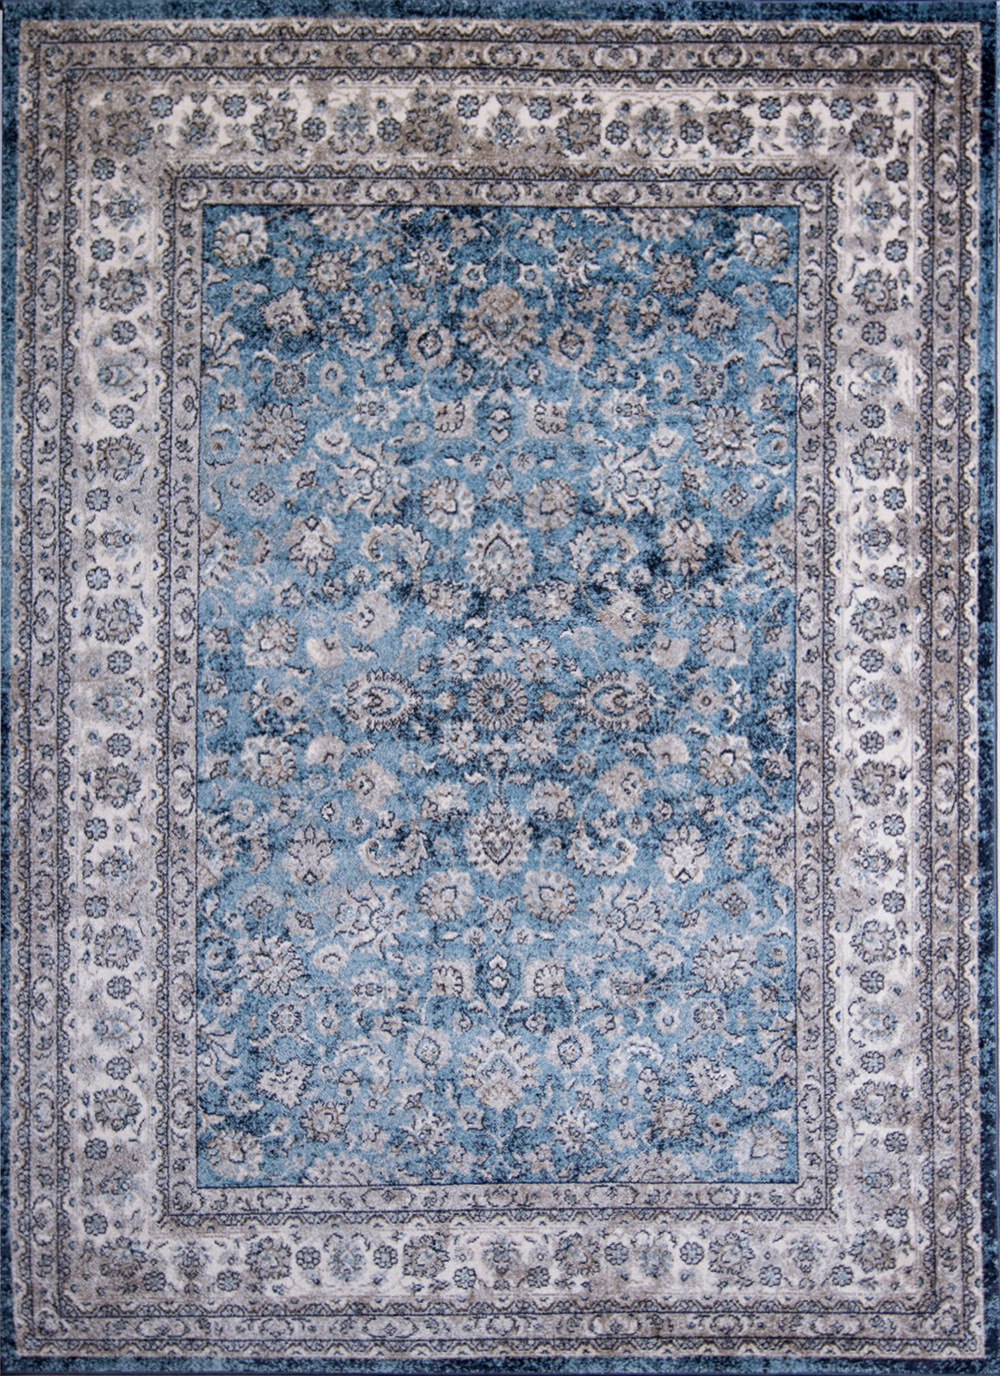 blue ivory traditional 5x7 area rug bordered oriental carpet actual 5 39 3 x 7 39 2 ebay. Black Bedroom Furniture Sets. Home Design Ideas